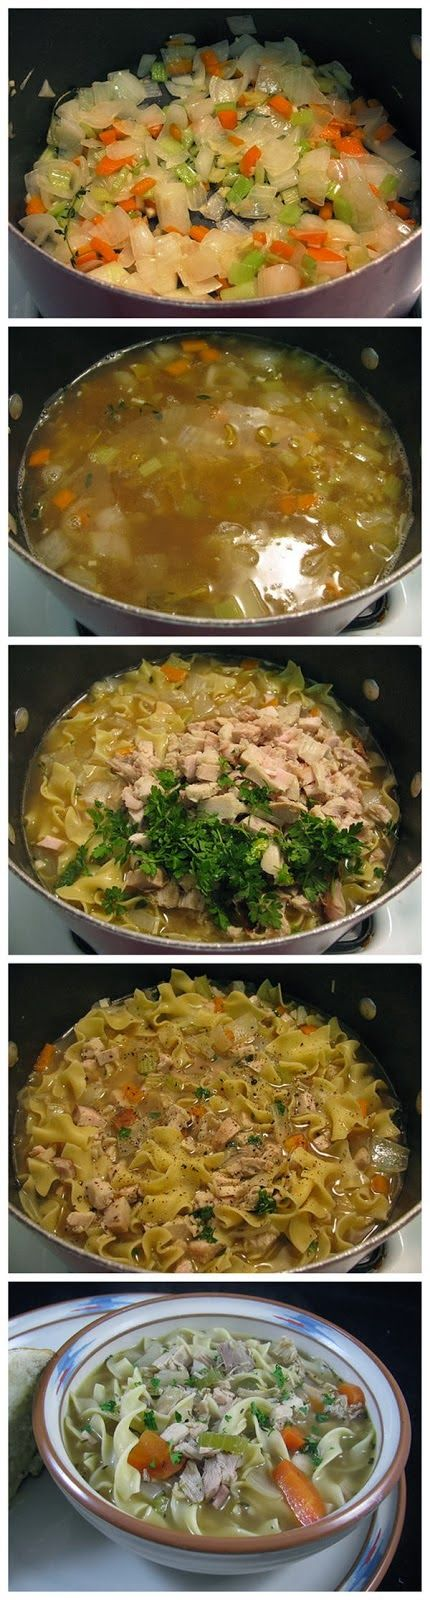 Easy Classic Turkey Noodle Soup